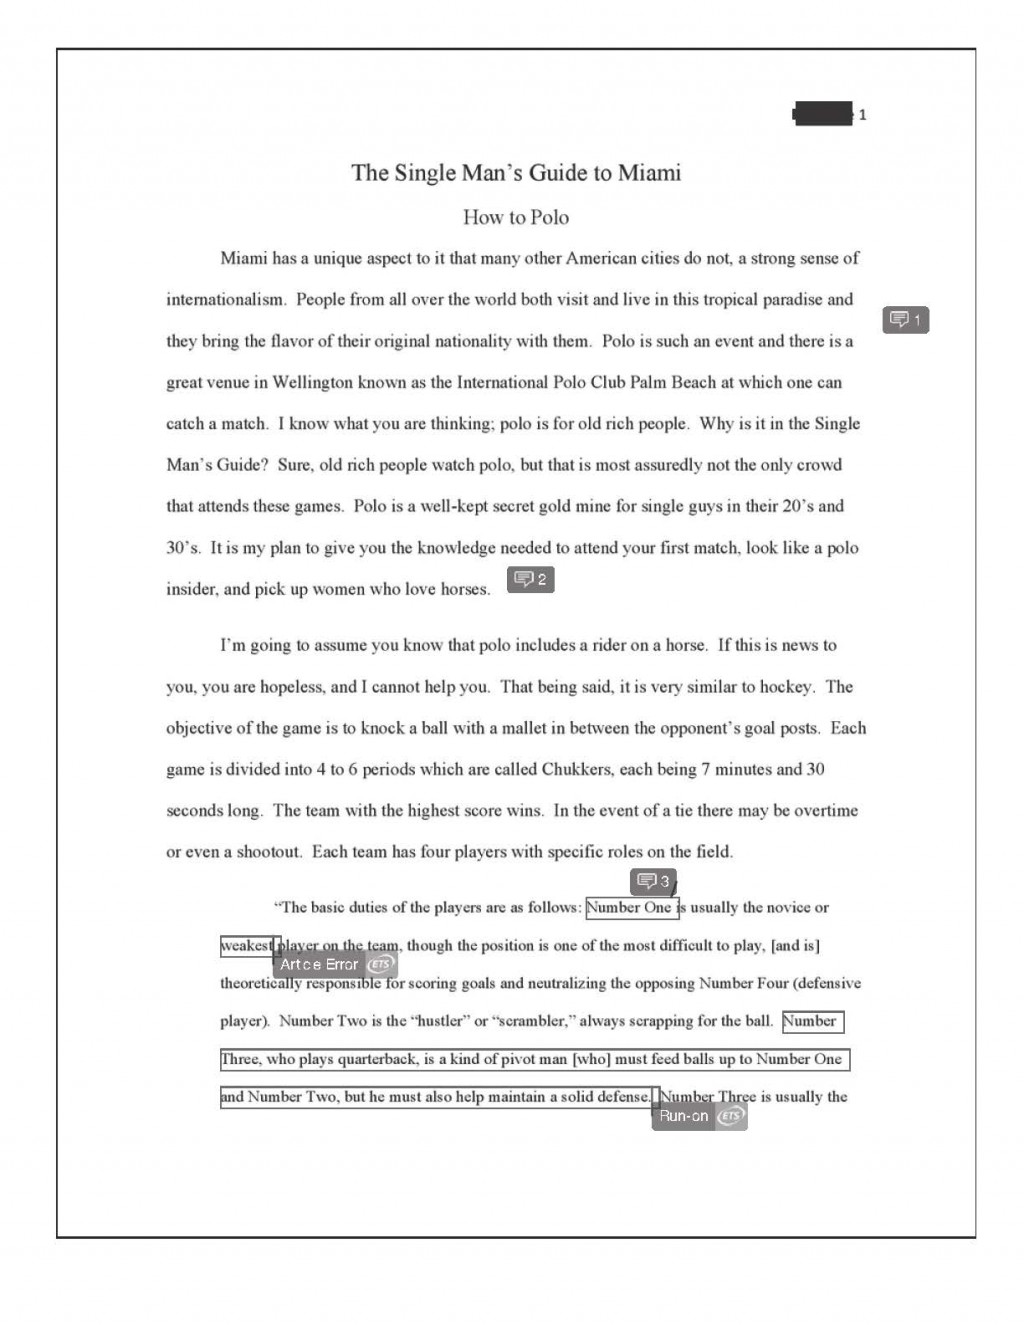 007 Essay Example Informational Informative Final How To Polo Redacted Page 2 Unforgettable Rubric 4th Grade Outline Explanatory Definition Large